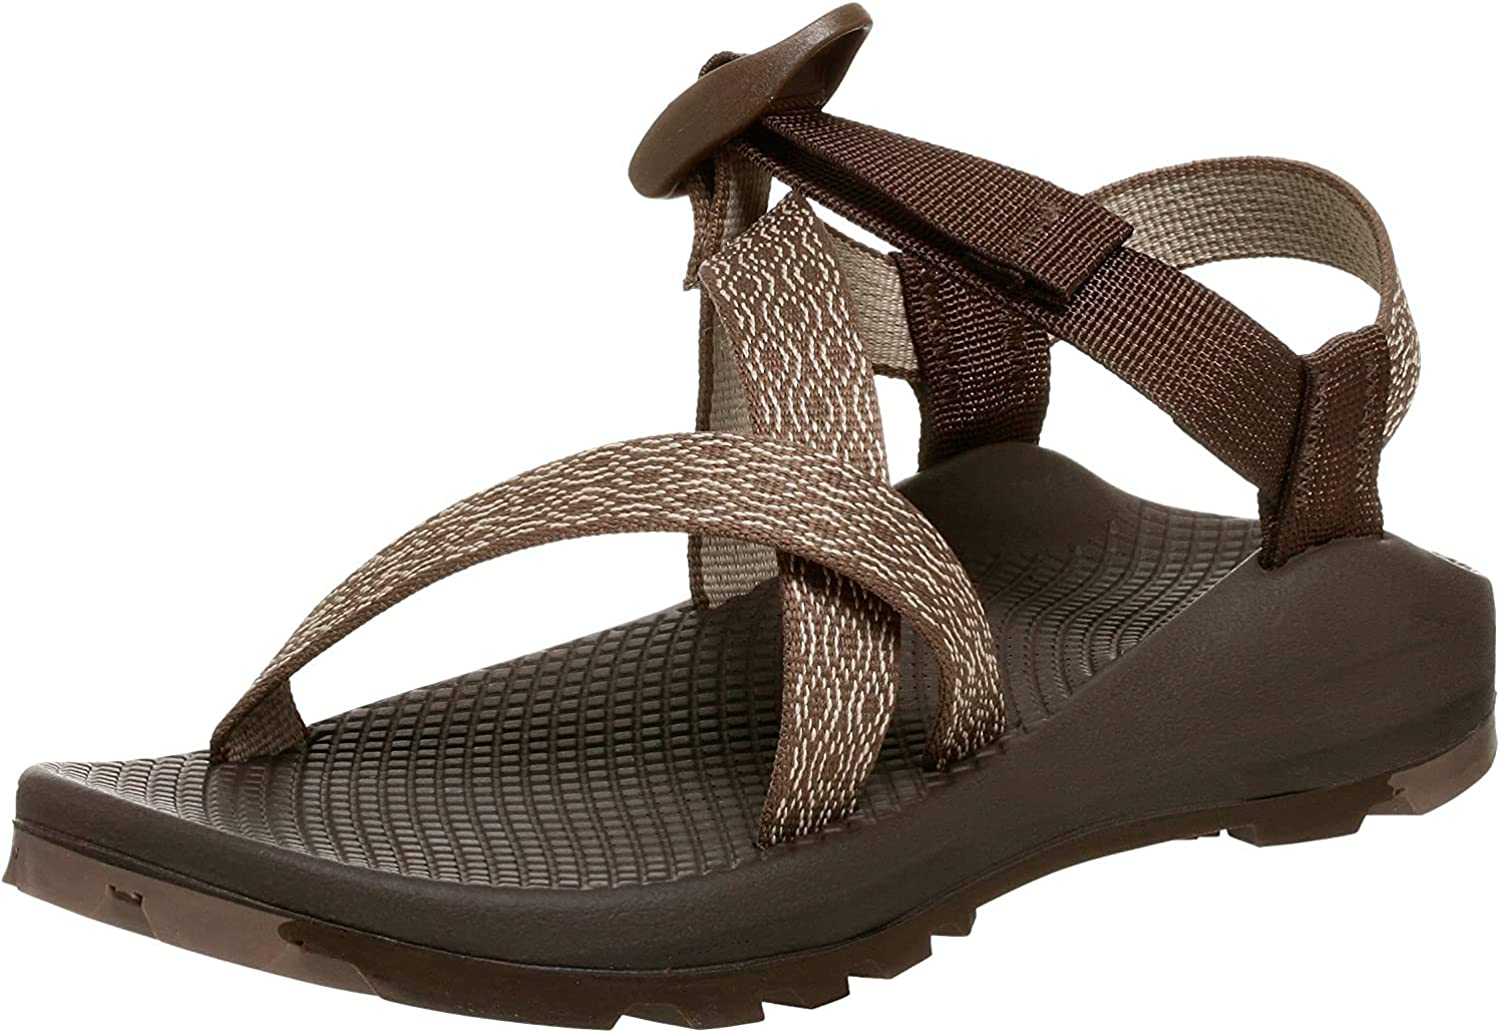 Chaco Men's Mega Z Special price for a limited time Cloud Woodstock Sandal M Weekend Ticket Sale item 11